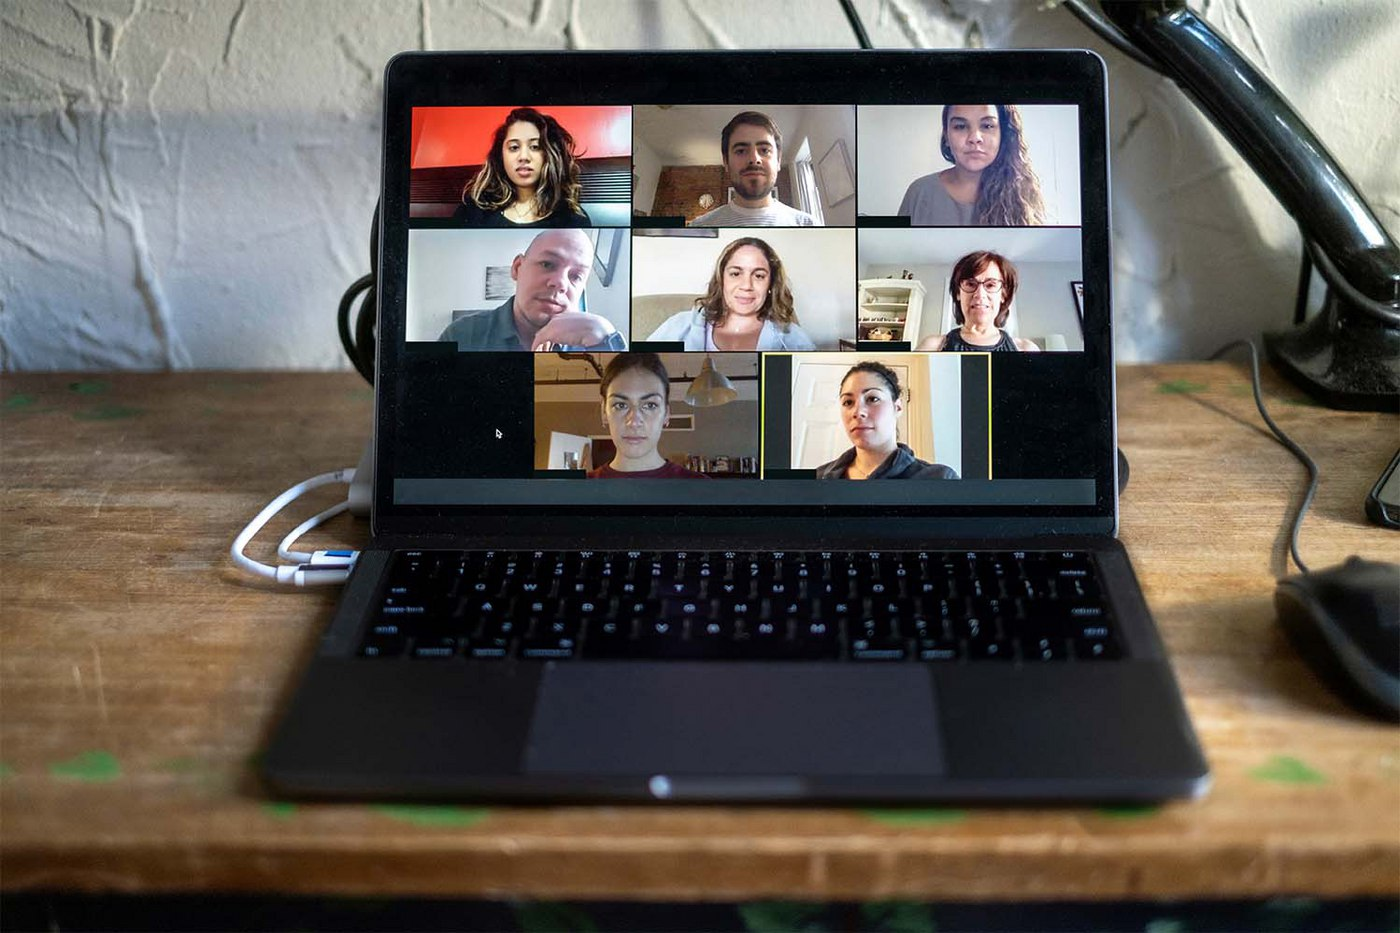 How To Video Chat More Securely